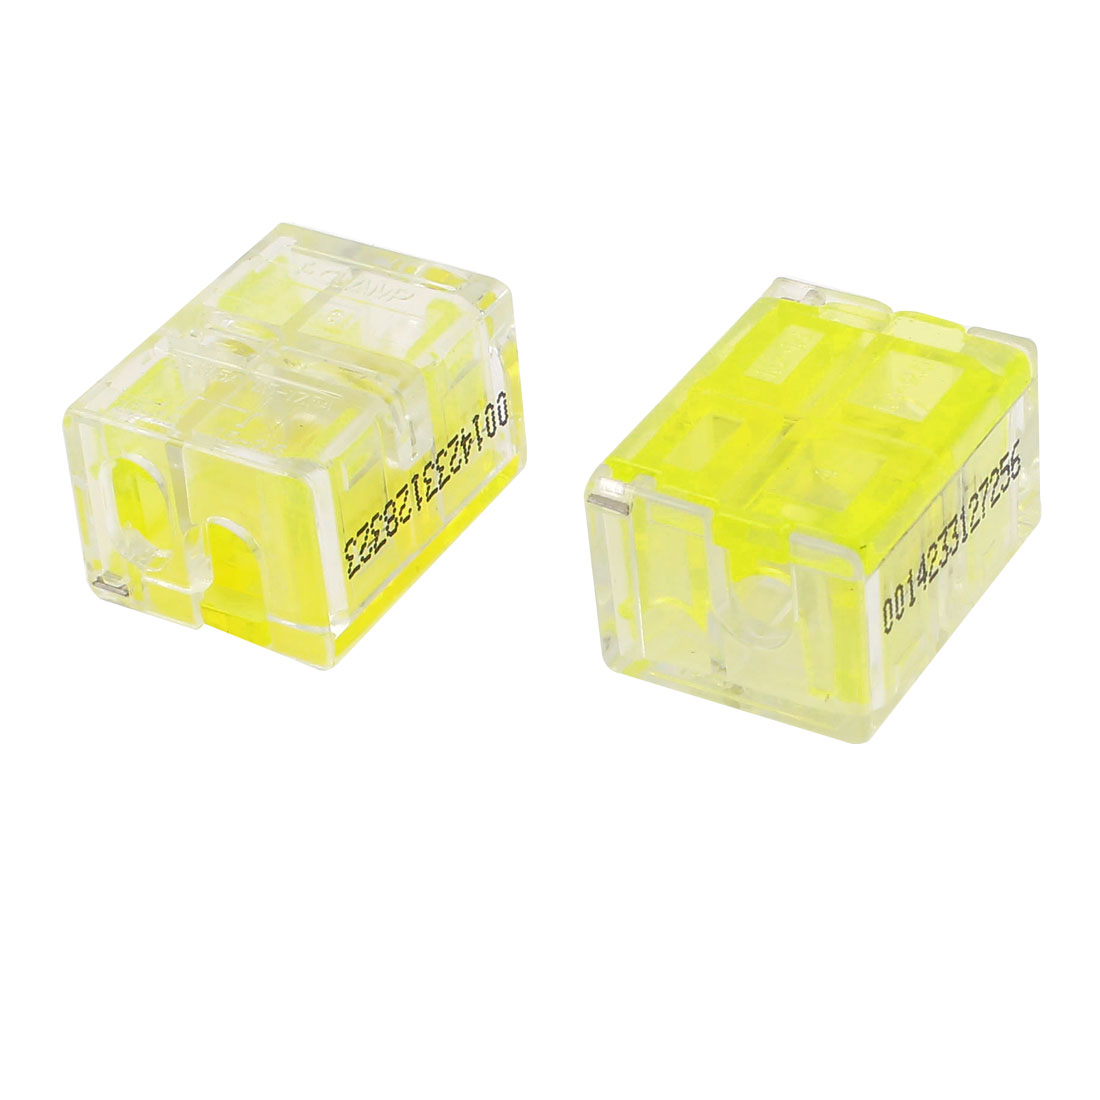 2 Pcs 1.0-1.5mm2 1.5-2.5mm2 I-Clamp Wire Cable Connector Case Yelllow Clear